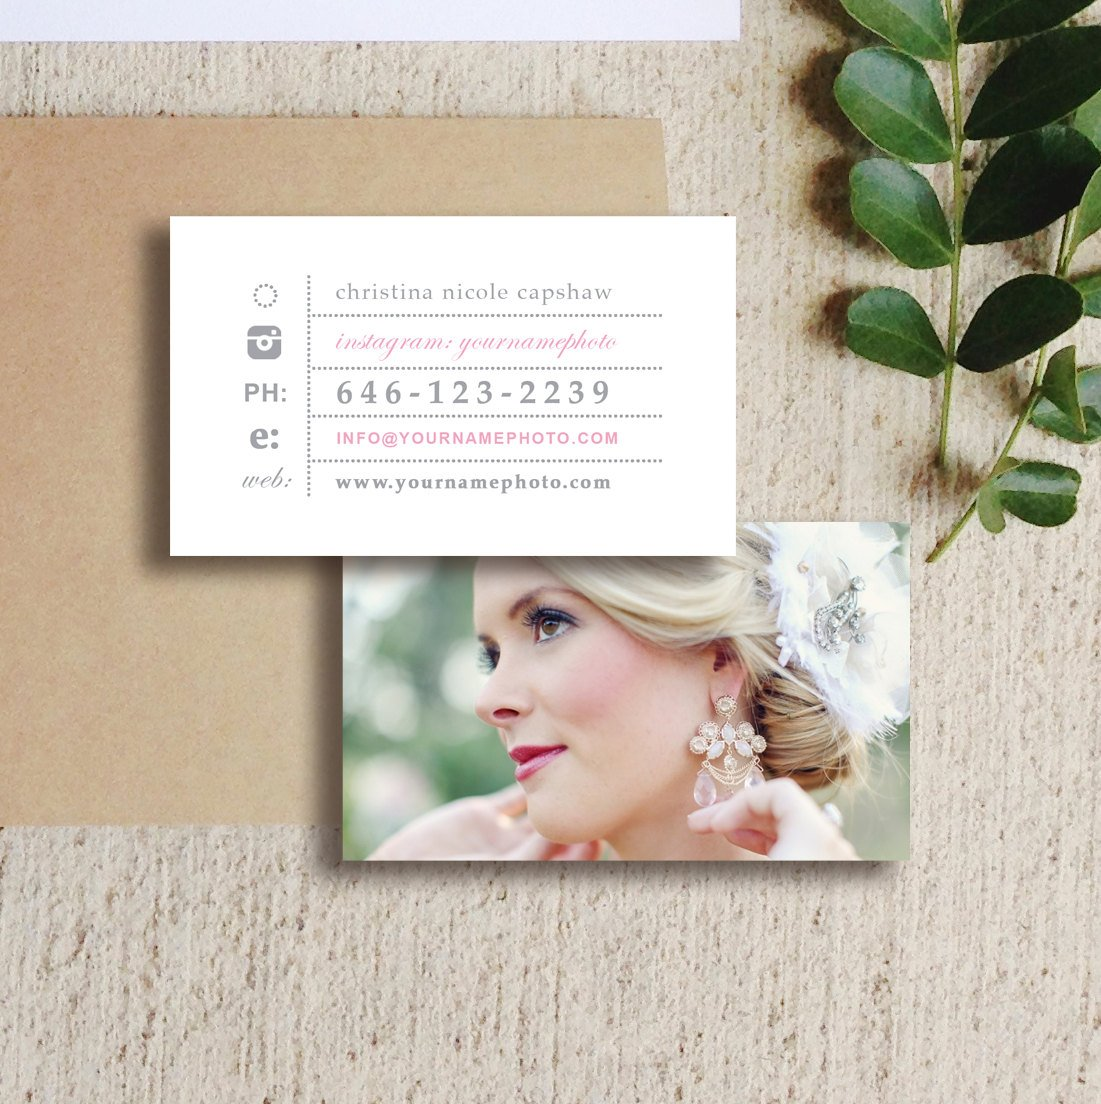 Wedding Photographer Business Cards ~ Business Card Templates ...